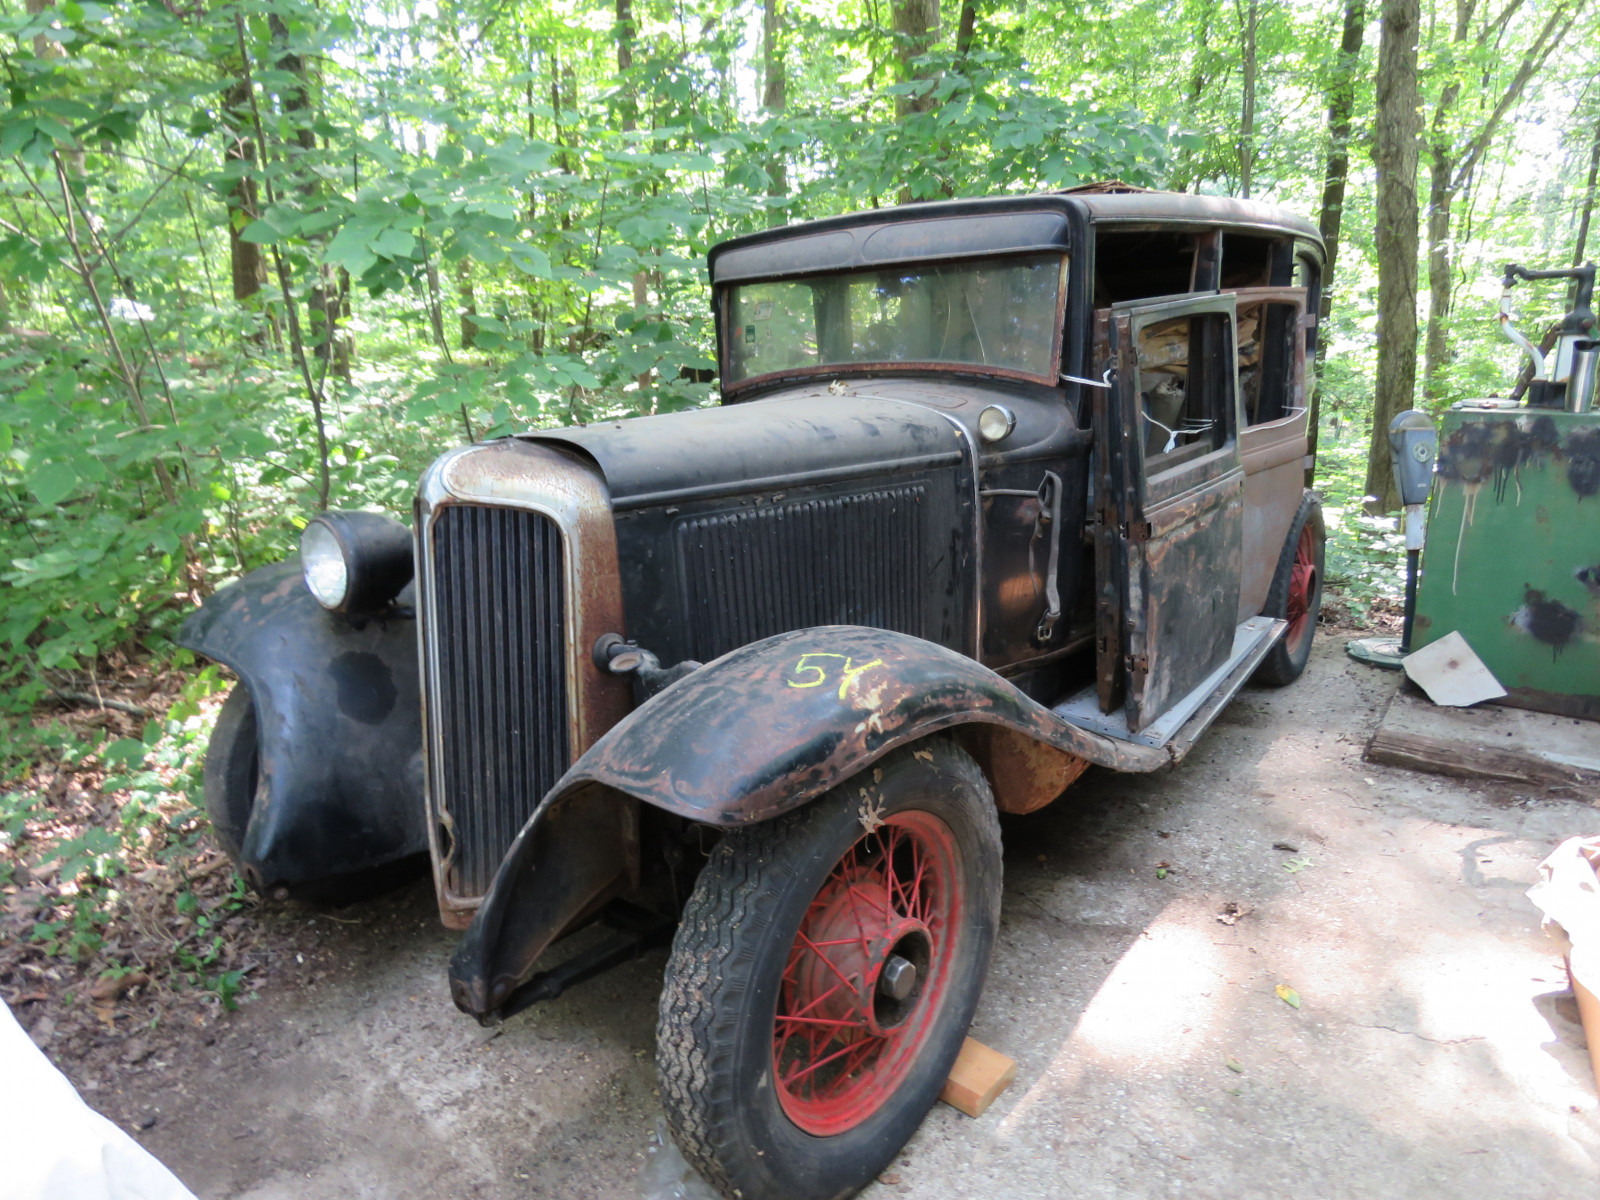 1931 Chrysler CM6 4dr Sedan Project - Image 1